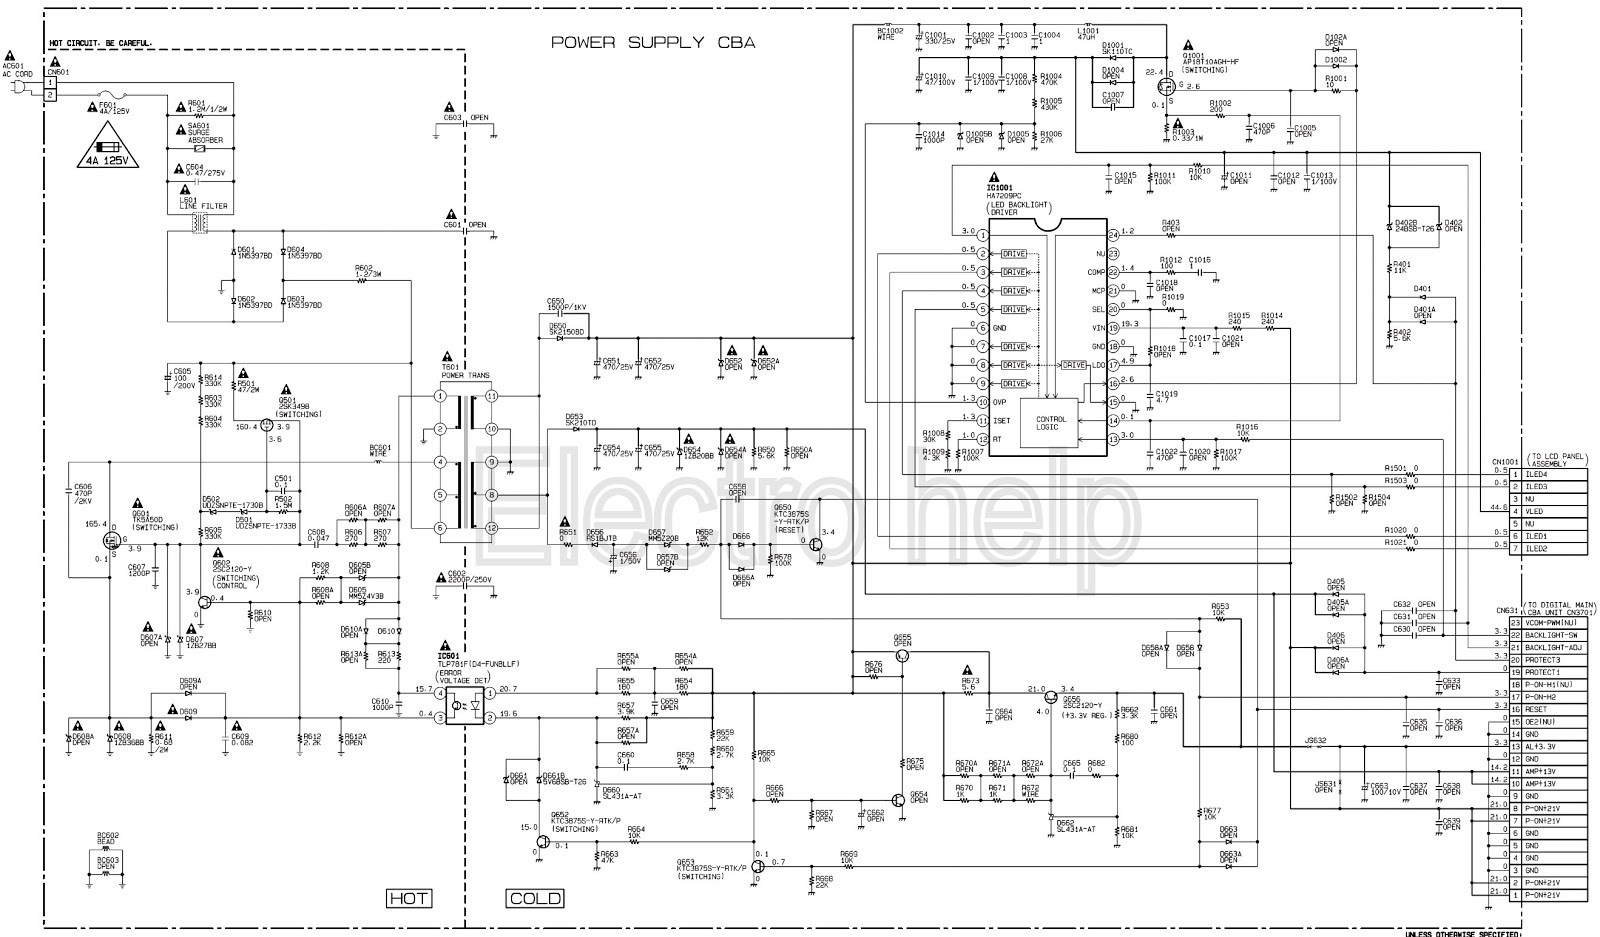 Power Cord Schematics